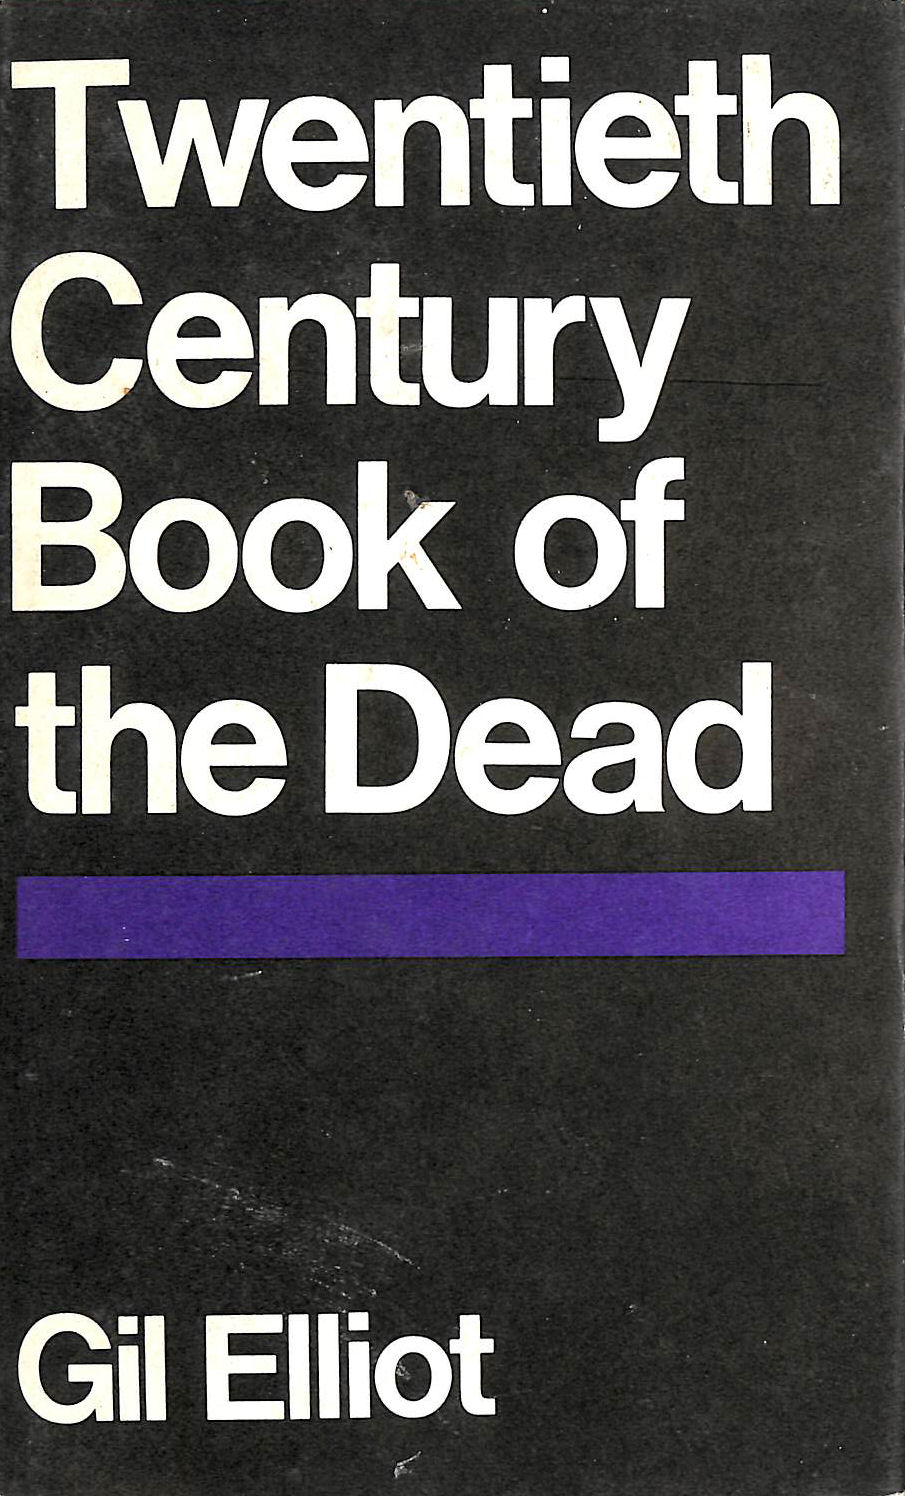 Image for Twentieth Century Book of the Dead